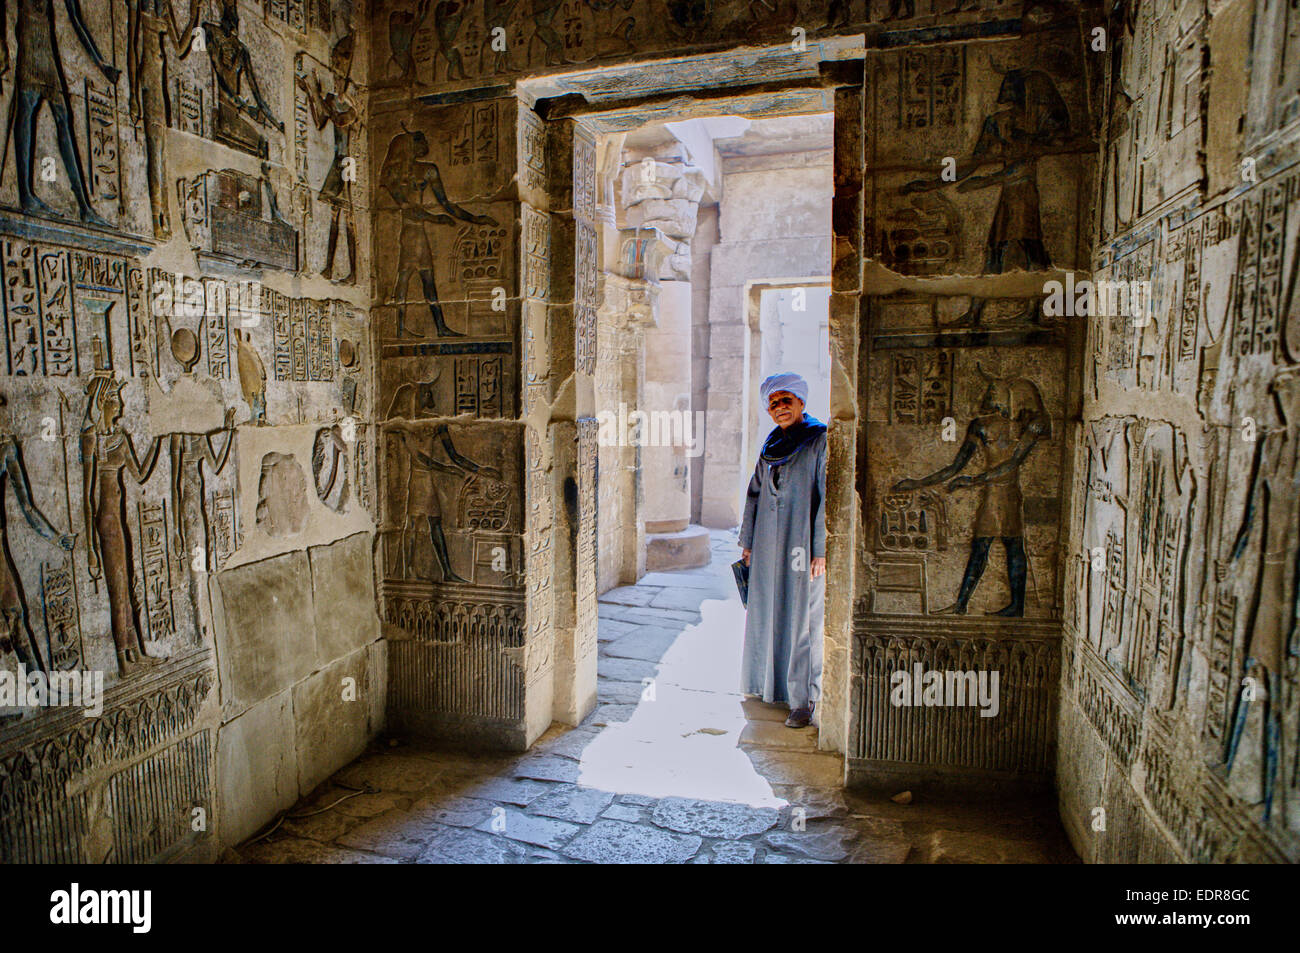 Tomb keeper in the Valley of the Kings - Stock Image